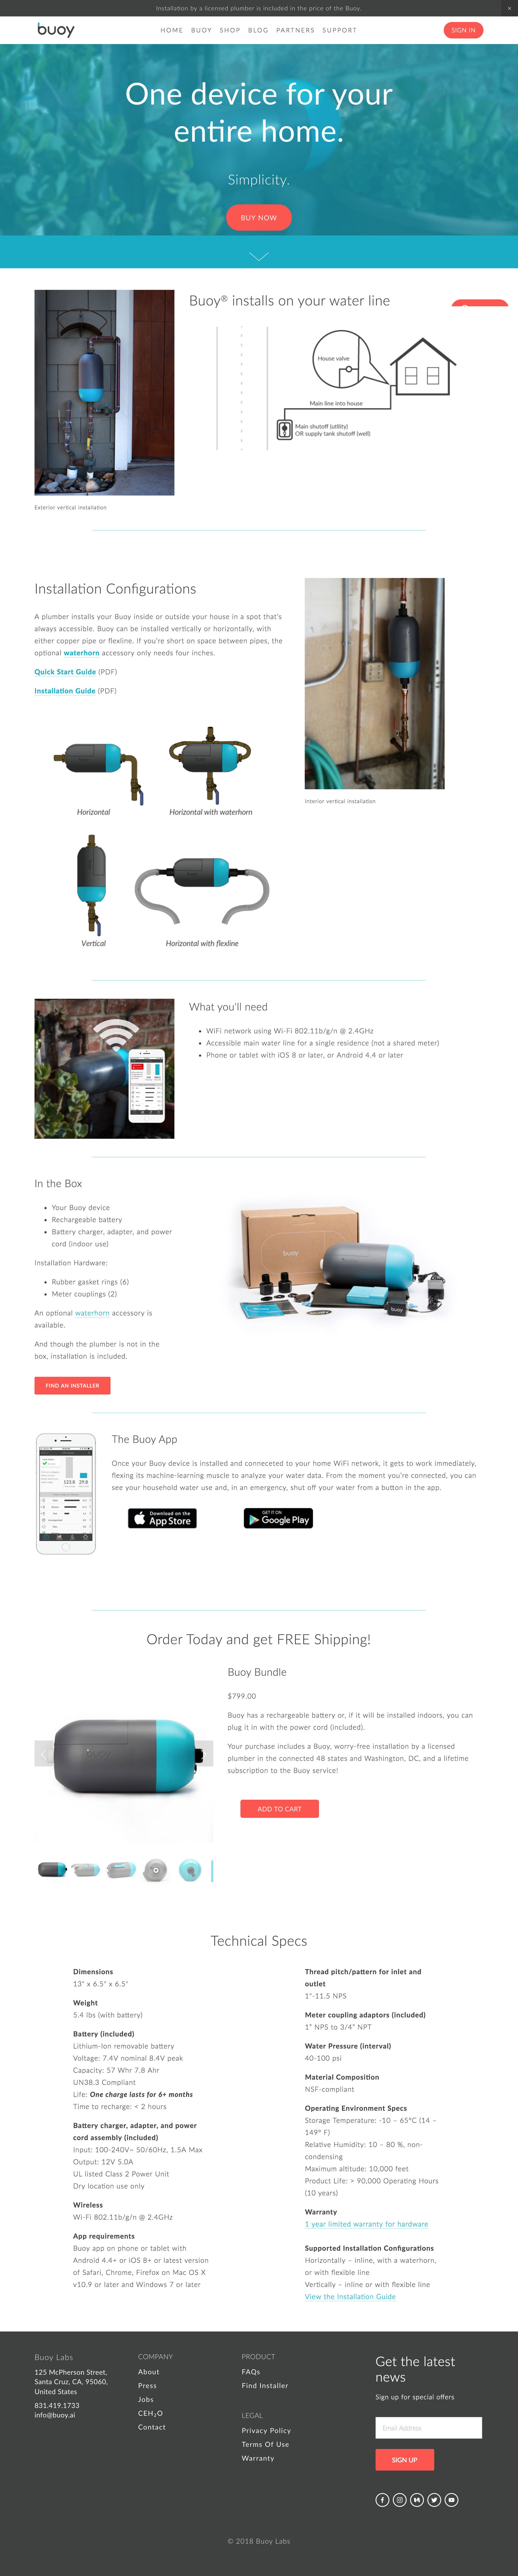 Website design of product details page. Implemented in Squarespace with Shopify integration, and with login access for homeowners to the web version of the Buoy Smart Home app.